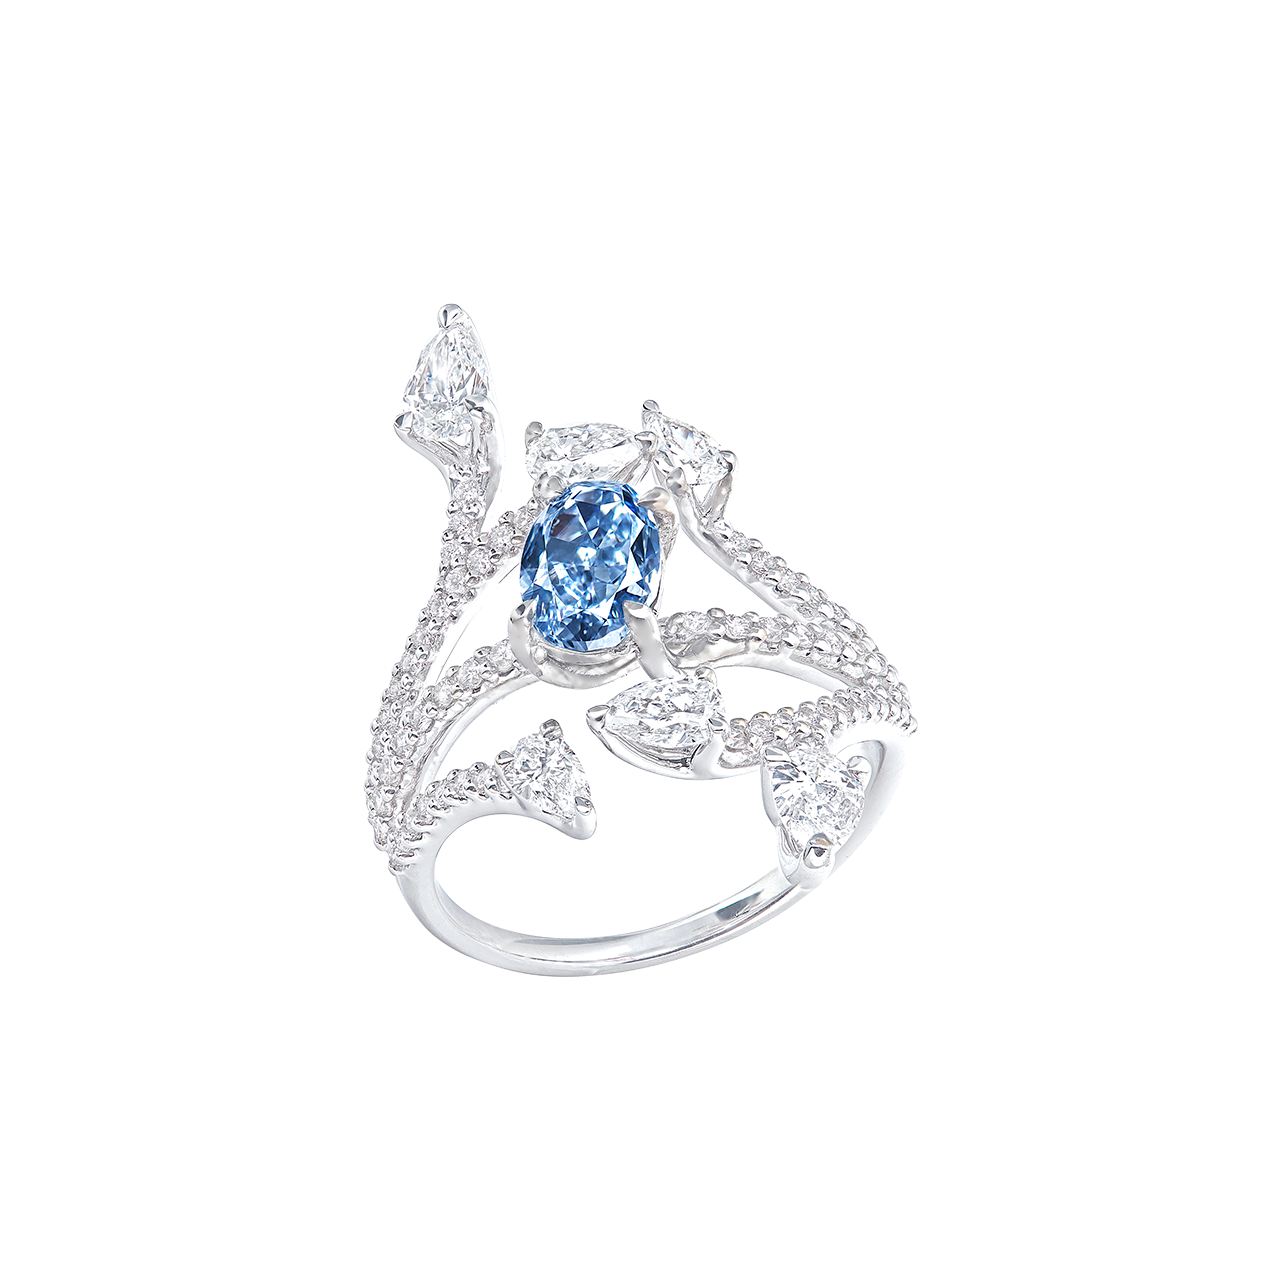 GIA 濃彩藍彩鑽鑽石戒 1.02克拉